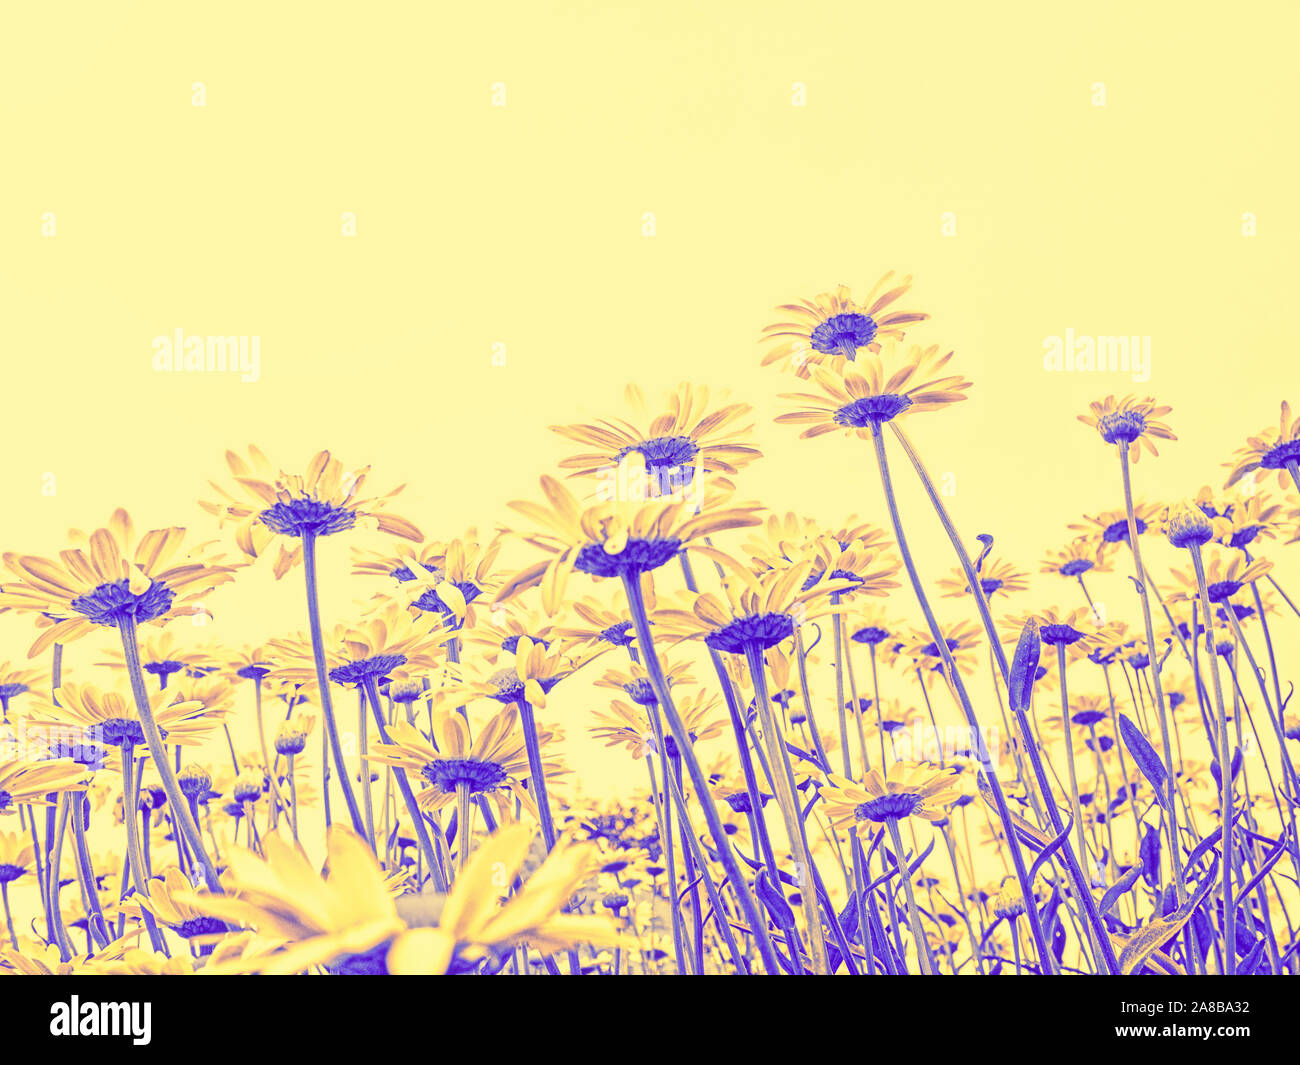 daisies-reach-for-the-sky-filtered-purple-and-yellow-spring-summer-nature-background-digital-wallpaper-2A8BA32.jpg